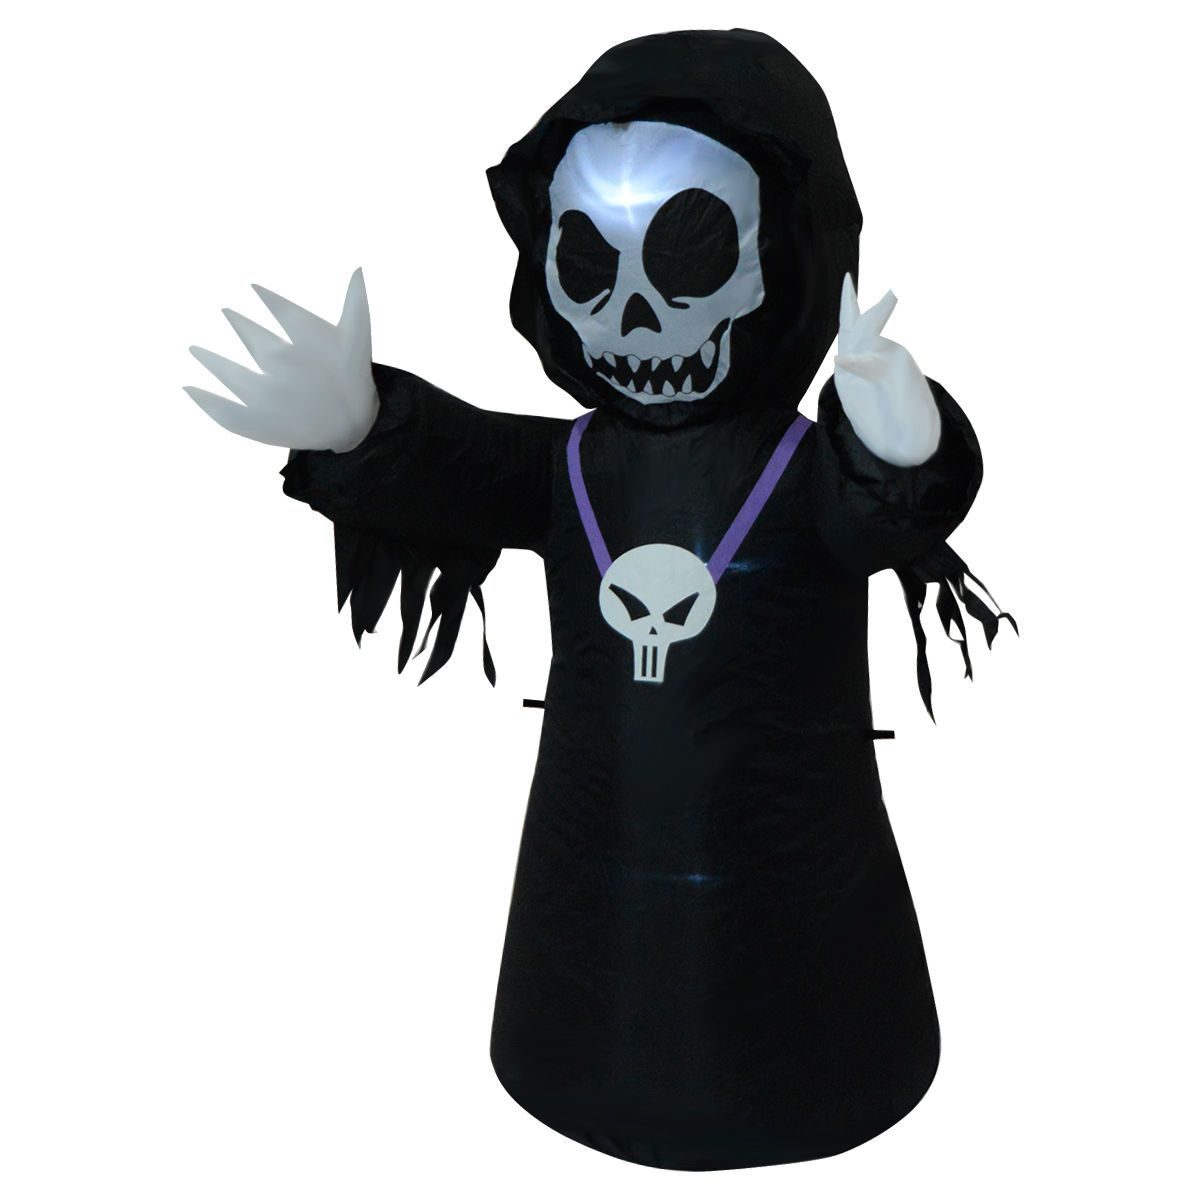 4FT Inflatable Black Ghost Halloween Decoration Yard/Indoor Lighted Air Blown